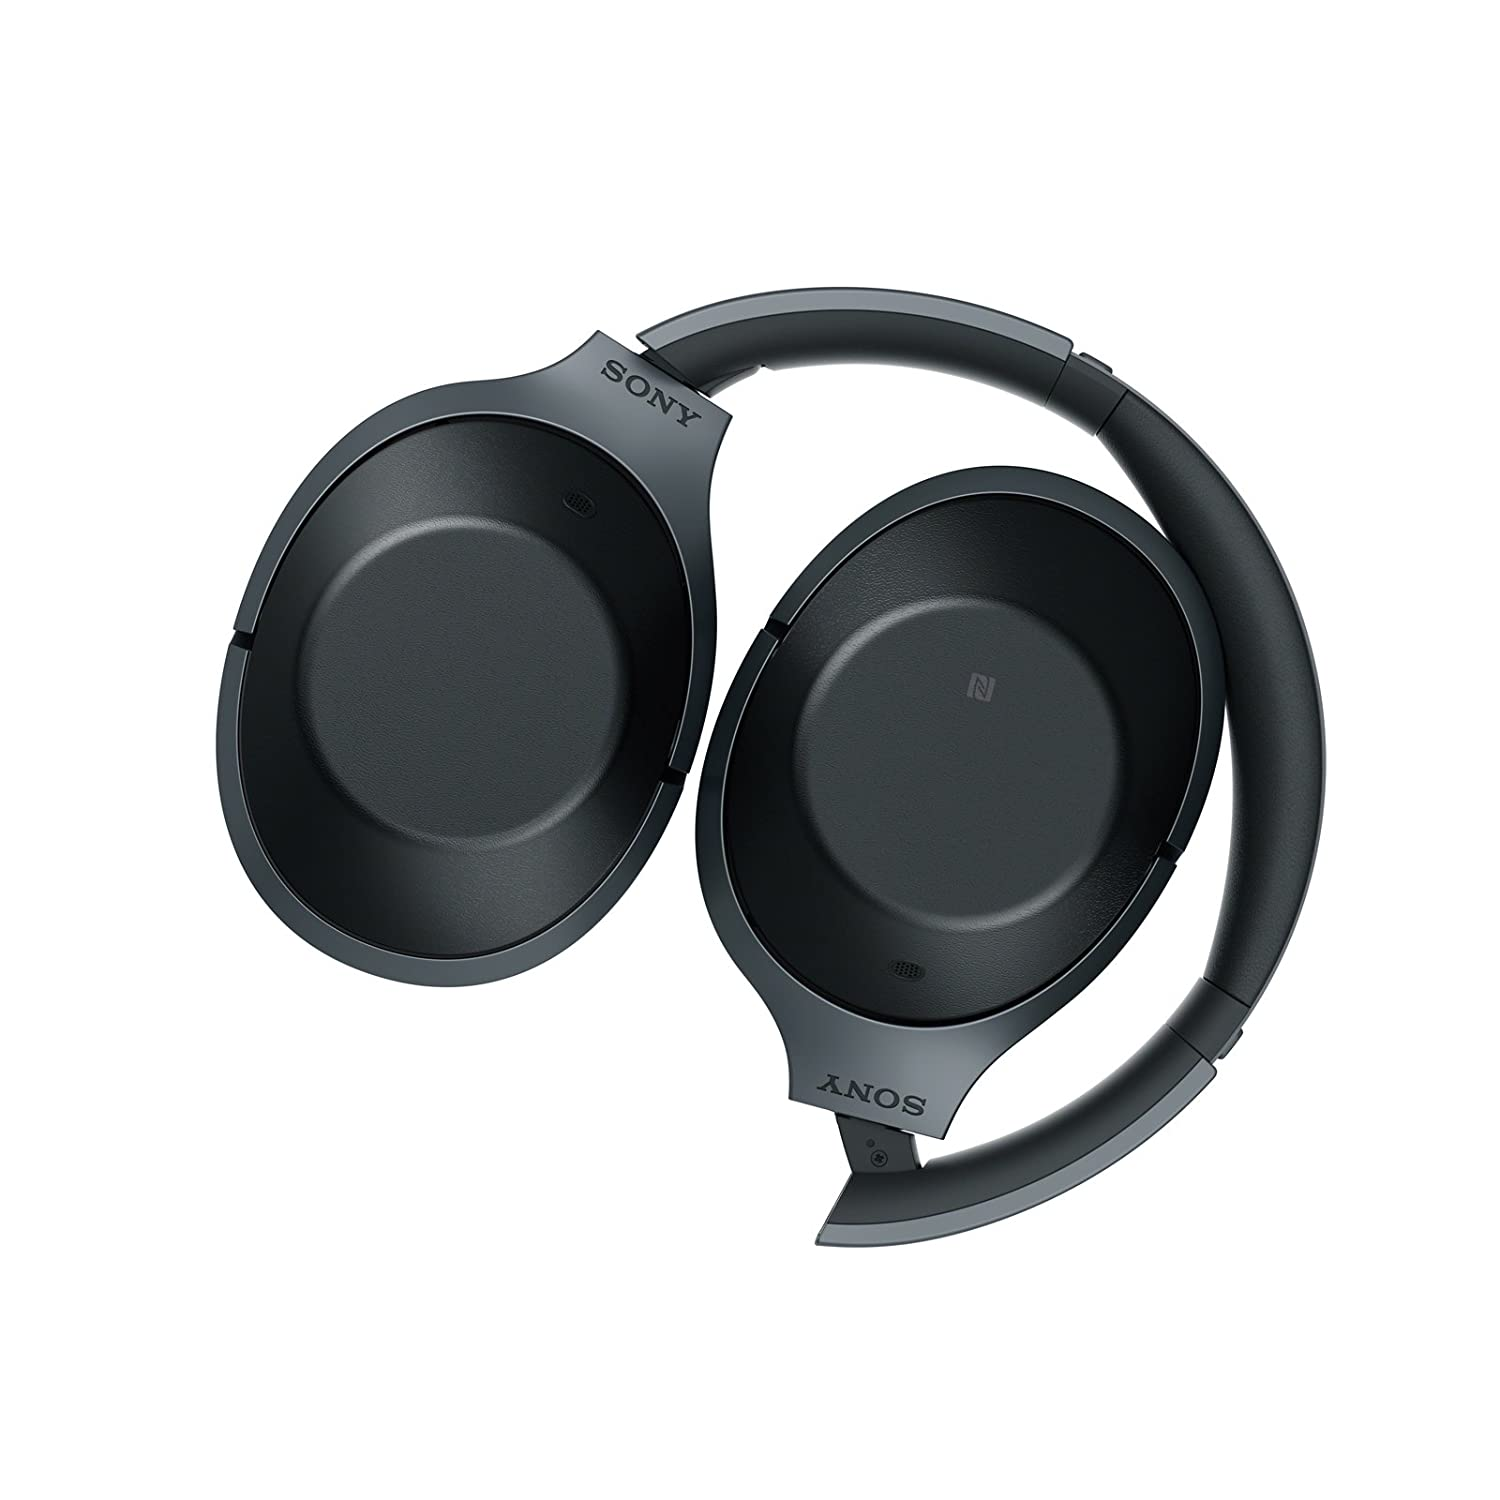 Sony Mdr 1000x Wireless Bluetooth Noise Cancelling Headphone Wiring Colors Free Engine Image For User Manual Electronics